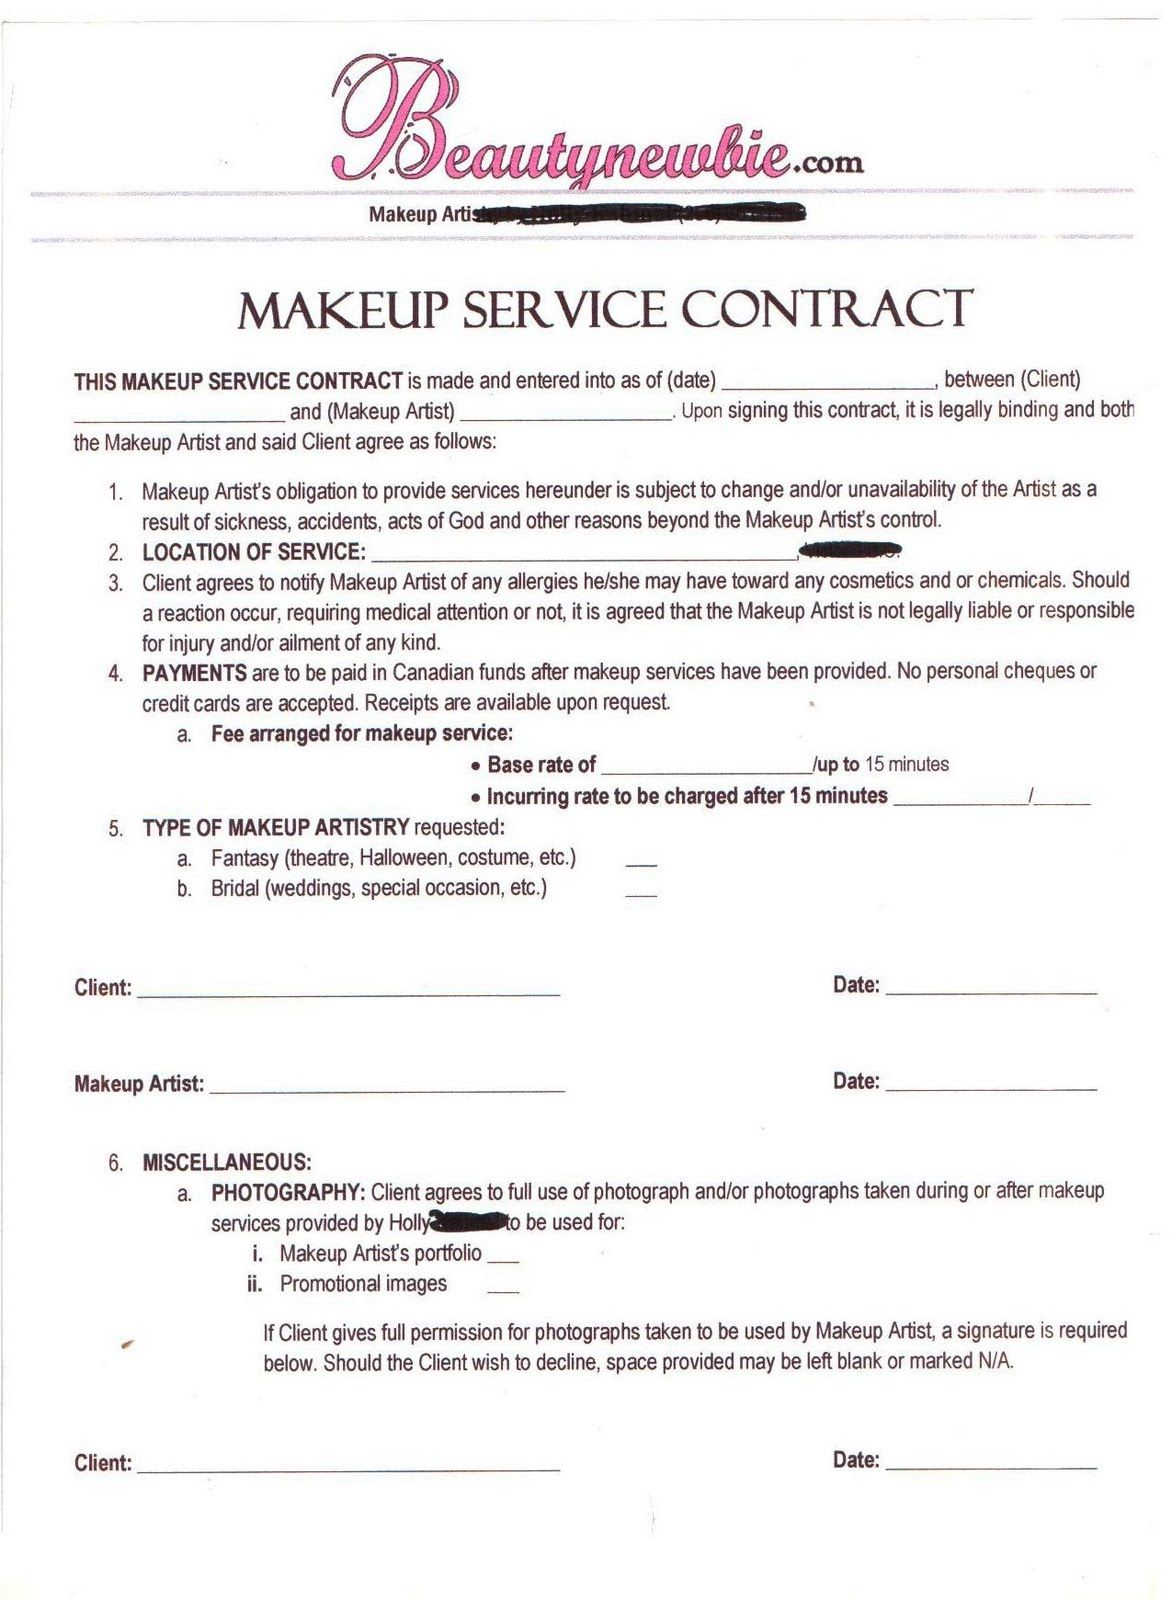 Contract | MAKEUP ARTIST | Pinterest | Makeup, Salons and Business